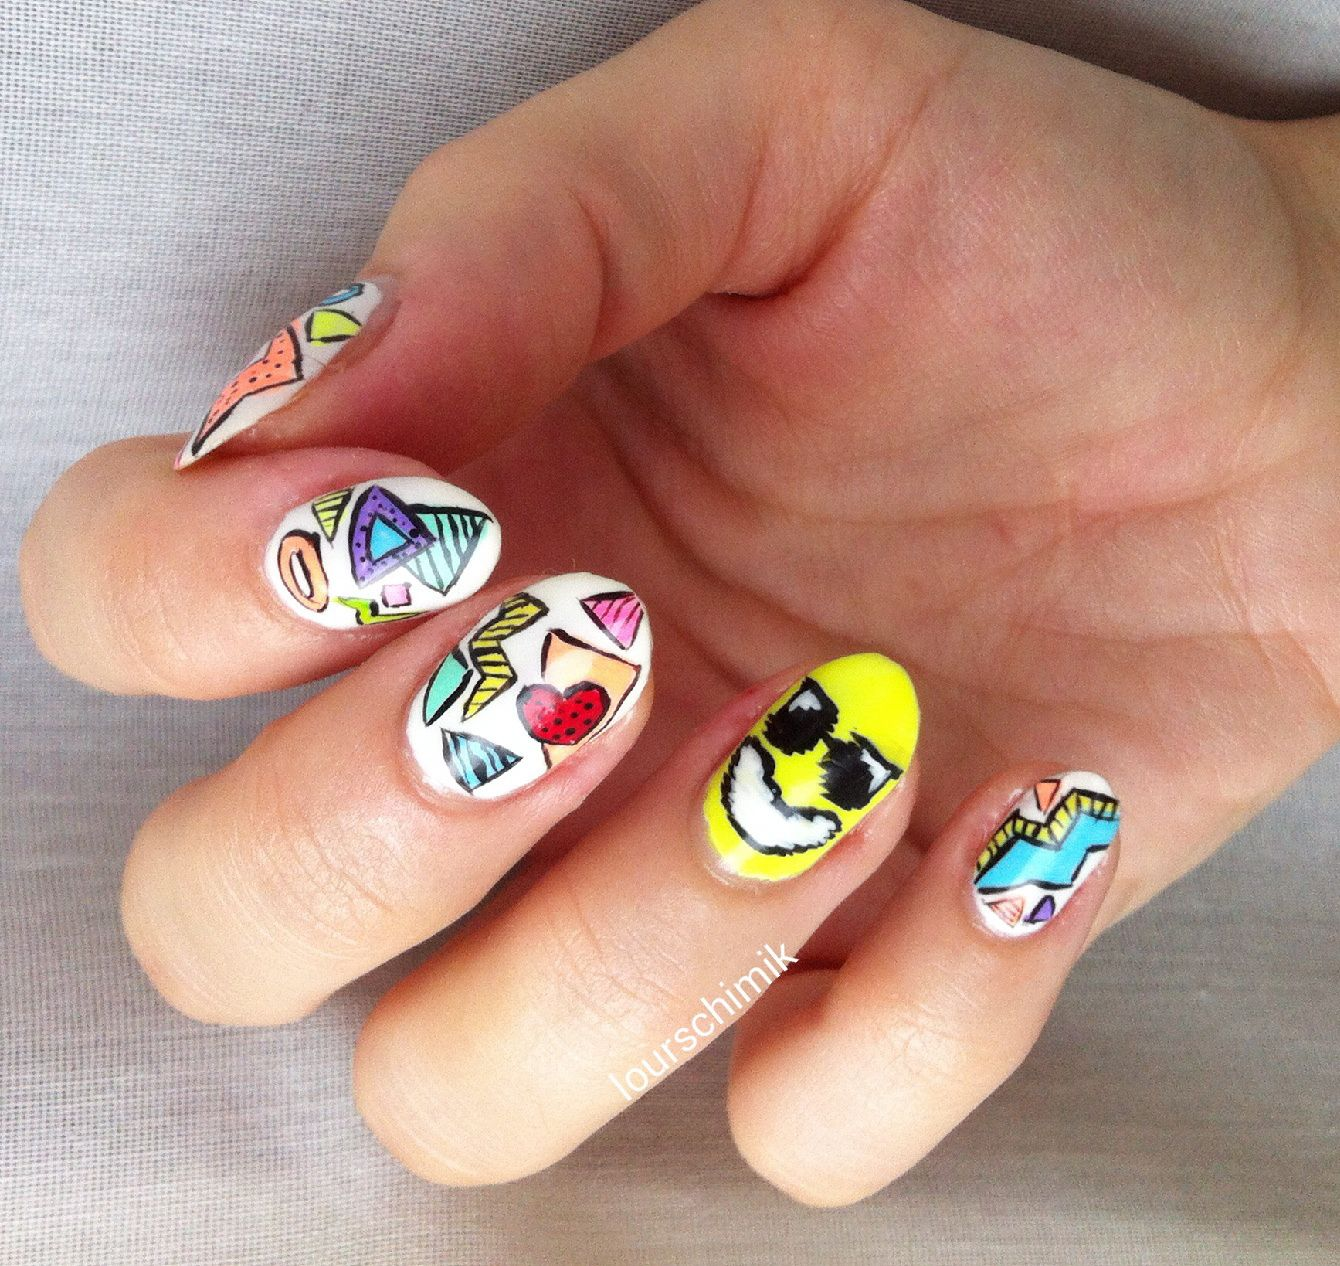 hit the floor baby !! - show luo nail art